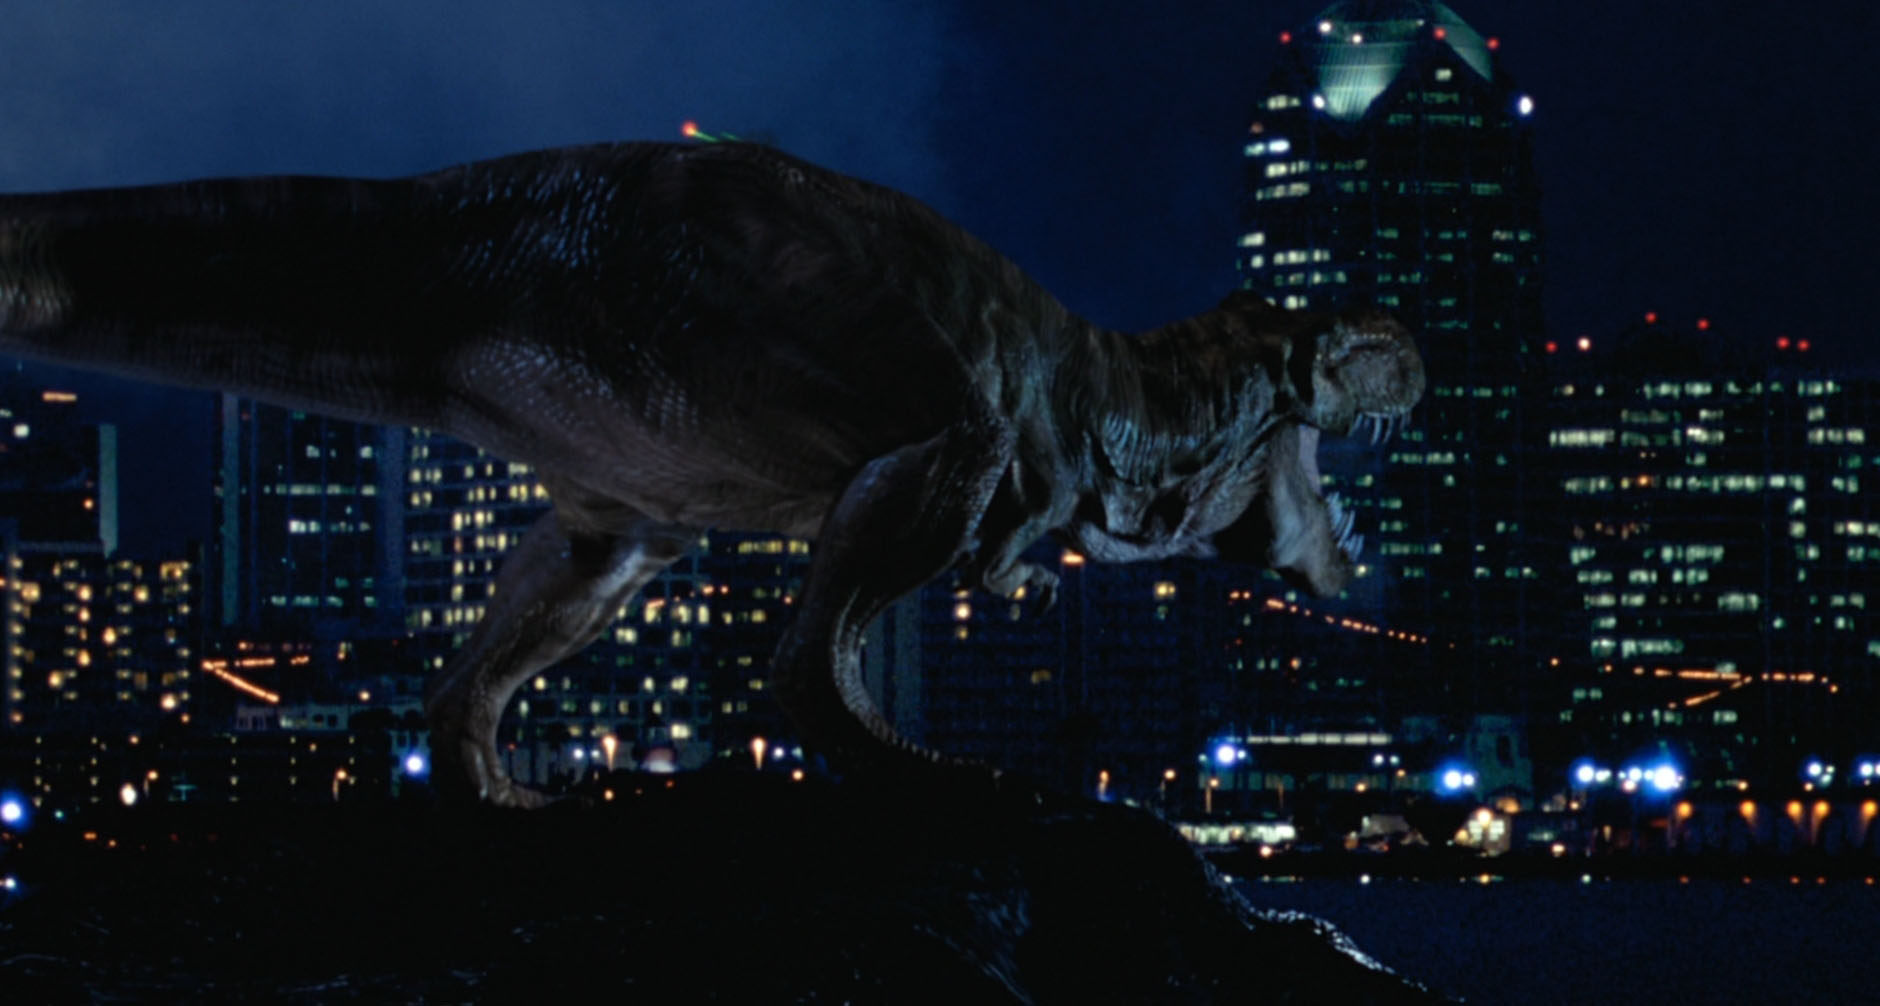 lost world san diego The Jurassic Park Franchise: What the Hell Happened?